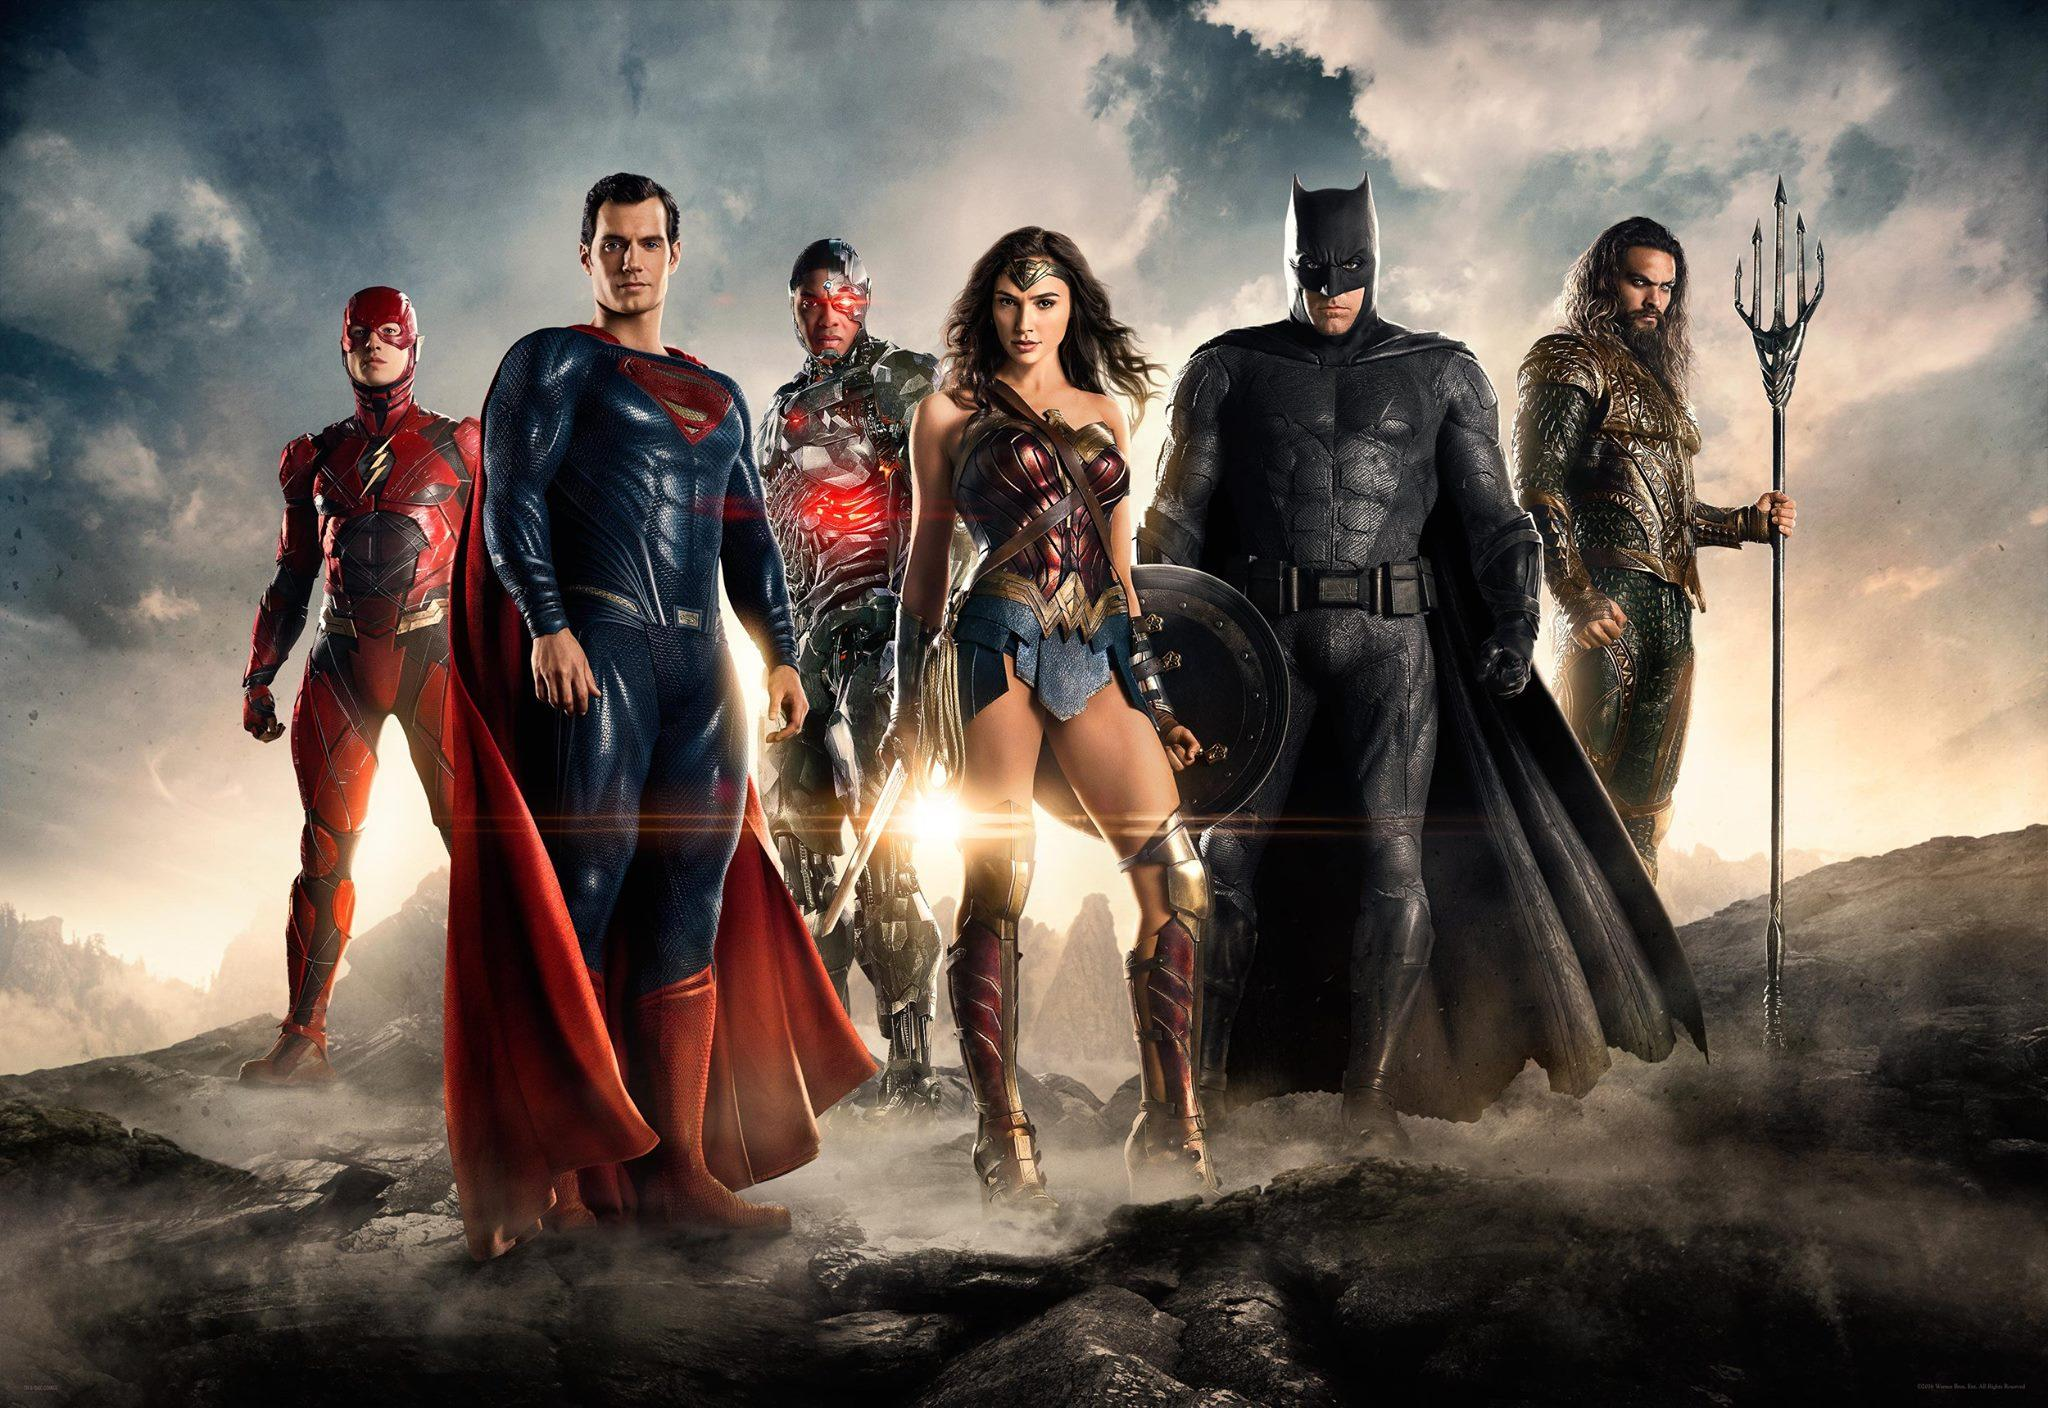 'Justice League' Opens To DCEU Low $96 Million